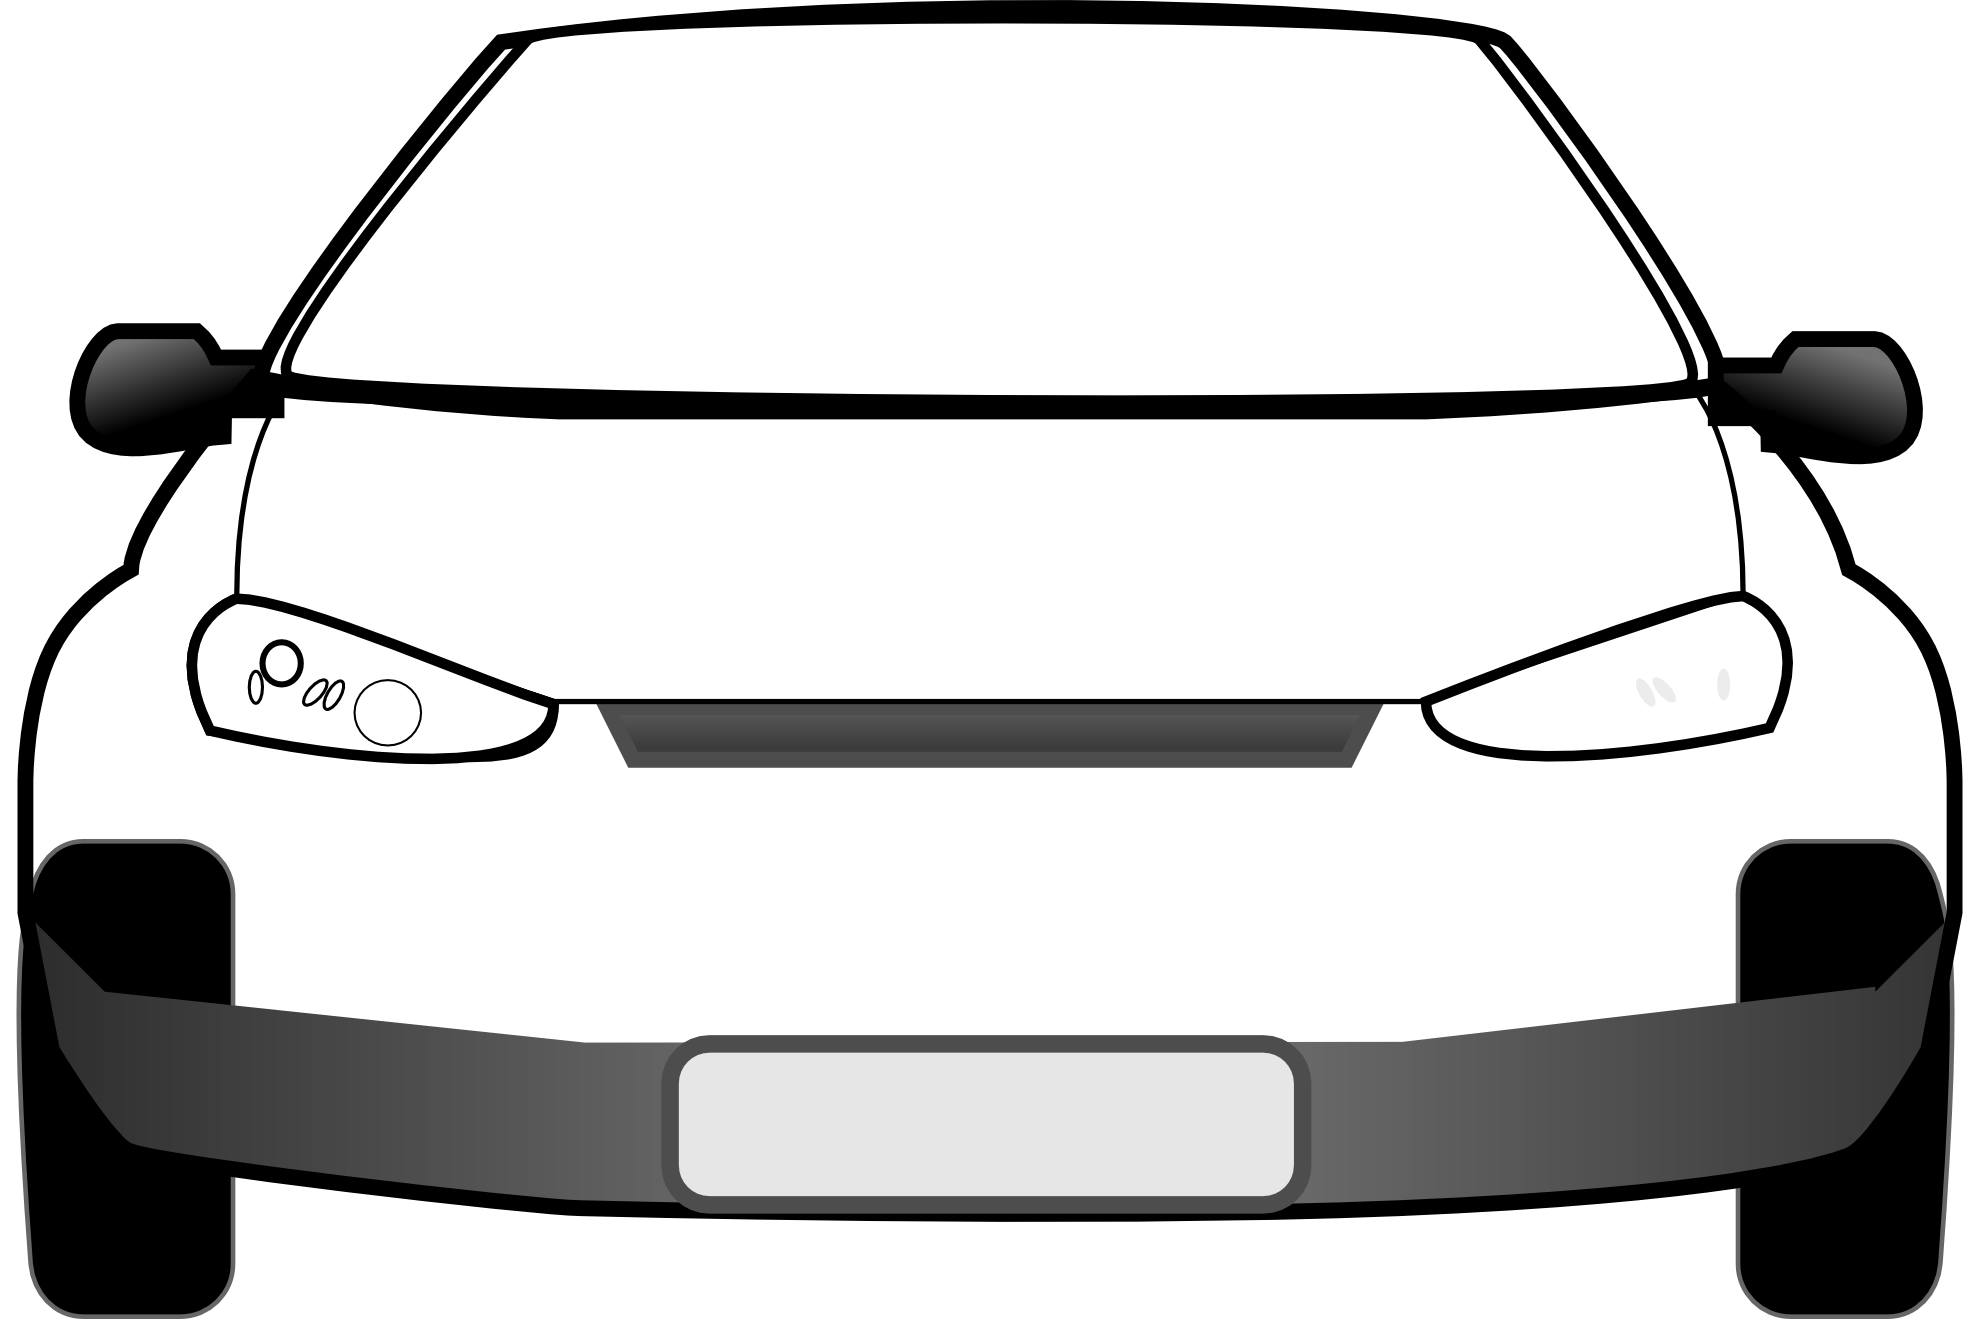 Car Front Free Cliparts That You Can Download To You Computer And